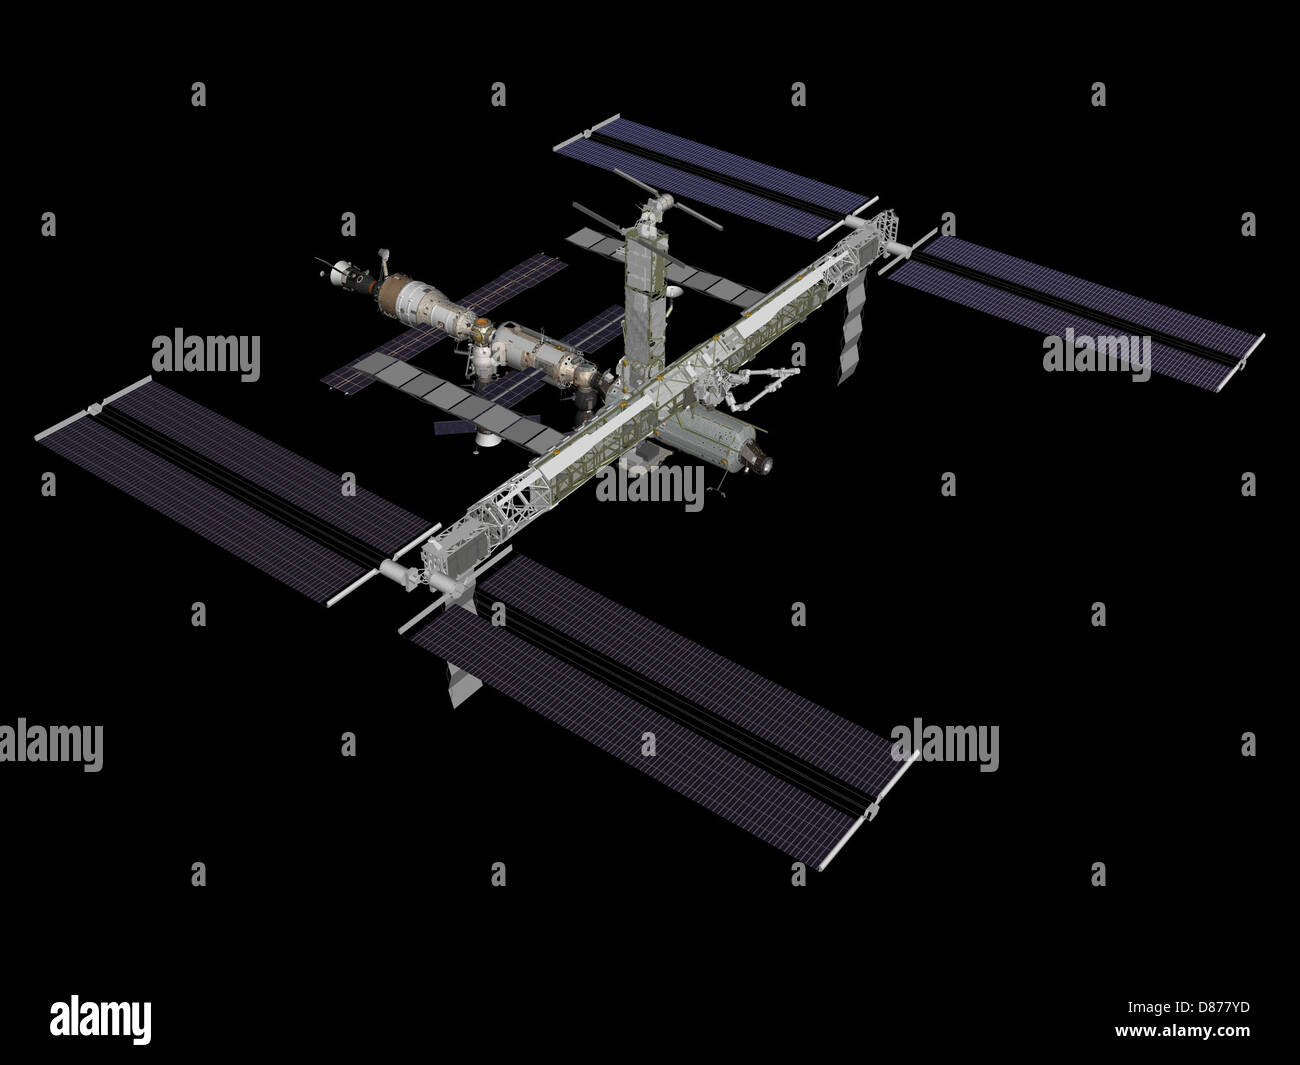 ISS after STS-117 (computer rendering of August 2006).jpg - Stock Image